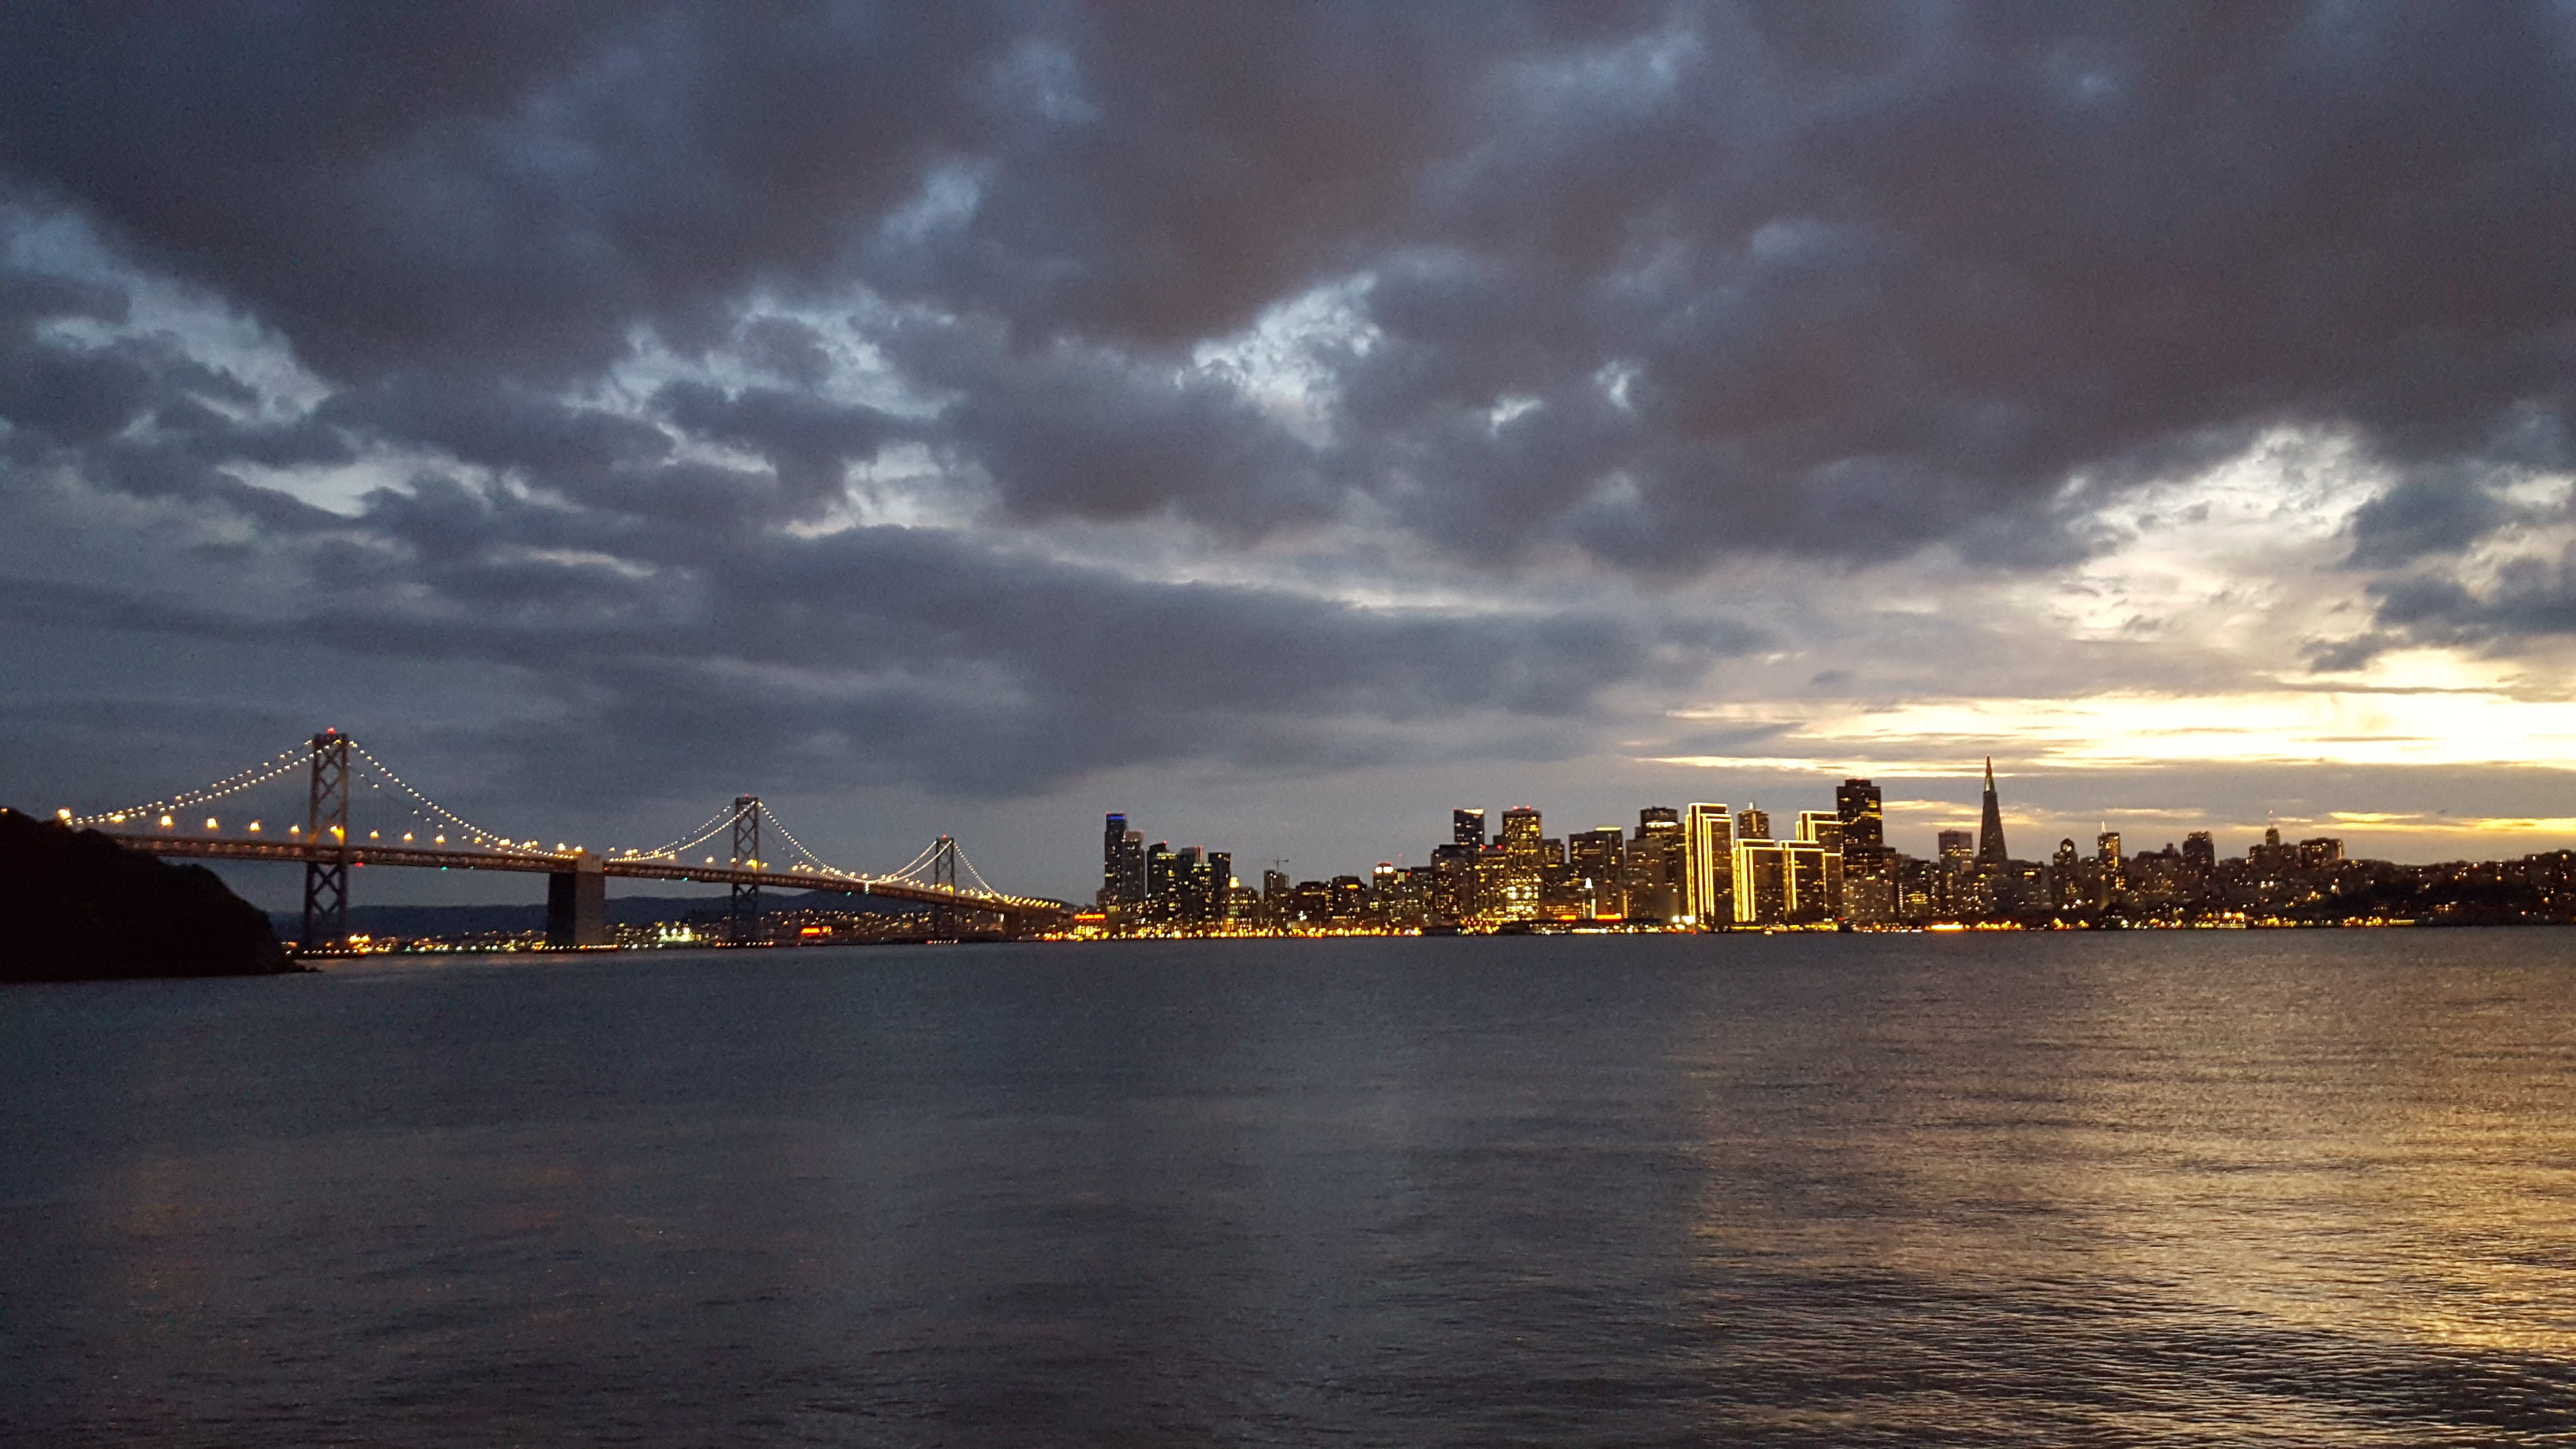 Free stock photo of city, clouds, cloudy, golden gate bridge